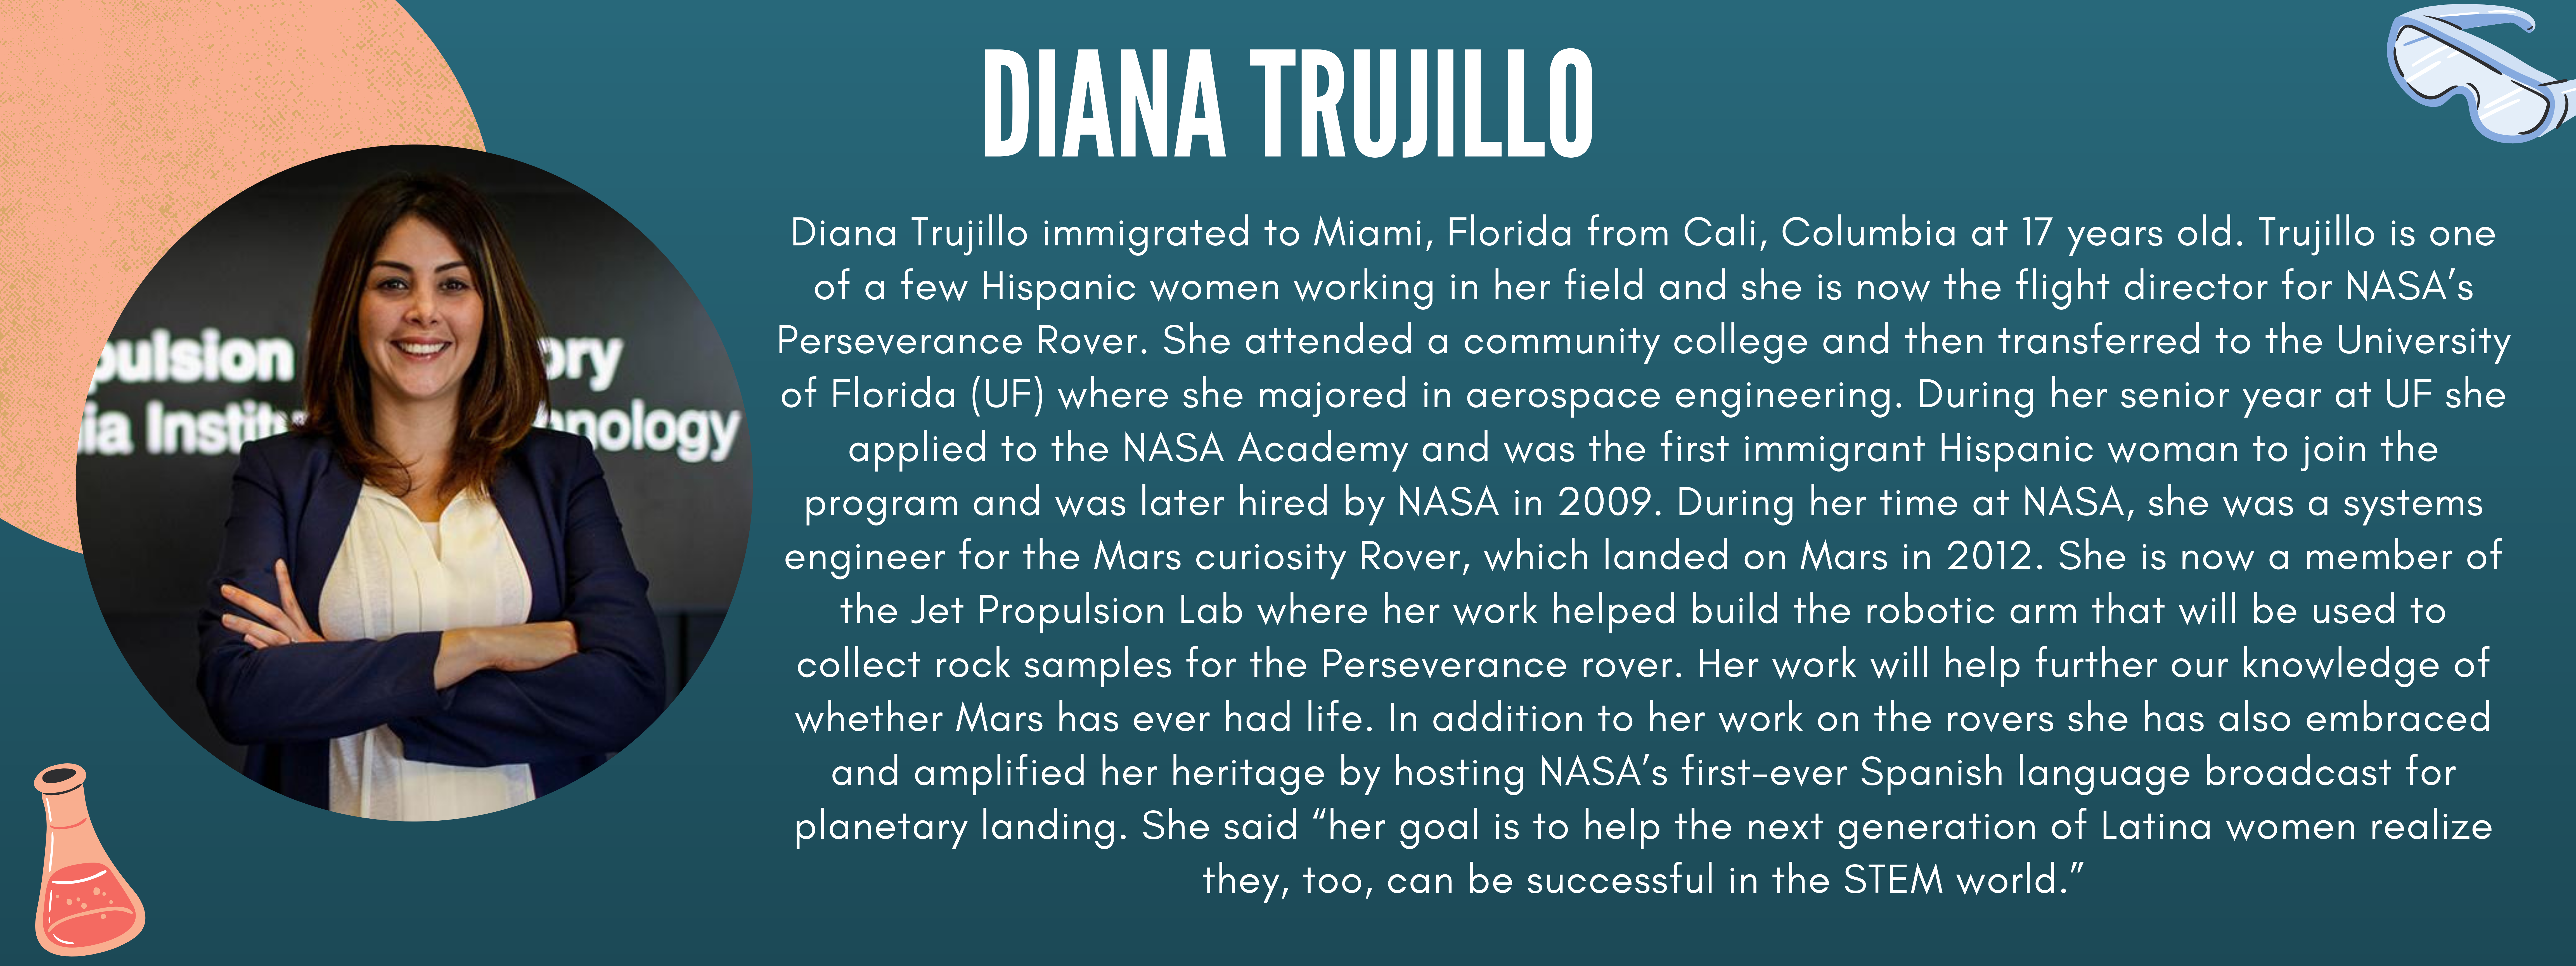 """Diana Trujillo immigrated to Miami, Florida from Cali, Columbia at 17 years old. Trujillo is one of a few Hispanic women working in her field and she is now the flight director for NASA's Perseverance Rover. She attended a community college and then transferred to the University of Florida (UF) where she majored in aerospace engineering. During her senior year at UF she applied to the NASA Academy and was the first immigrant Hispanic woman to join the program and was later hired by NASA in 2009. During her time at NASA, she was a systems engineer for the Mars curiosity Rover, which landed on Mars in 2012. She is now a member of the Jet Propulsion Lab where her work helped build the robotic arm that will be used to collect rock samples for the Perseverance rover. Her work will help further our knowledge of whether Mars has ever had life. In addition to her work on the rovers she has also embraced and amplified her heritage by hosting NASA's first-ever Spanish language broadcast for planetary landing. She said """"her goal is to help the next generation of Latina women realize they, too, can be successful in the STEM world."""""""